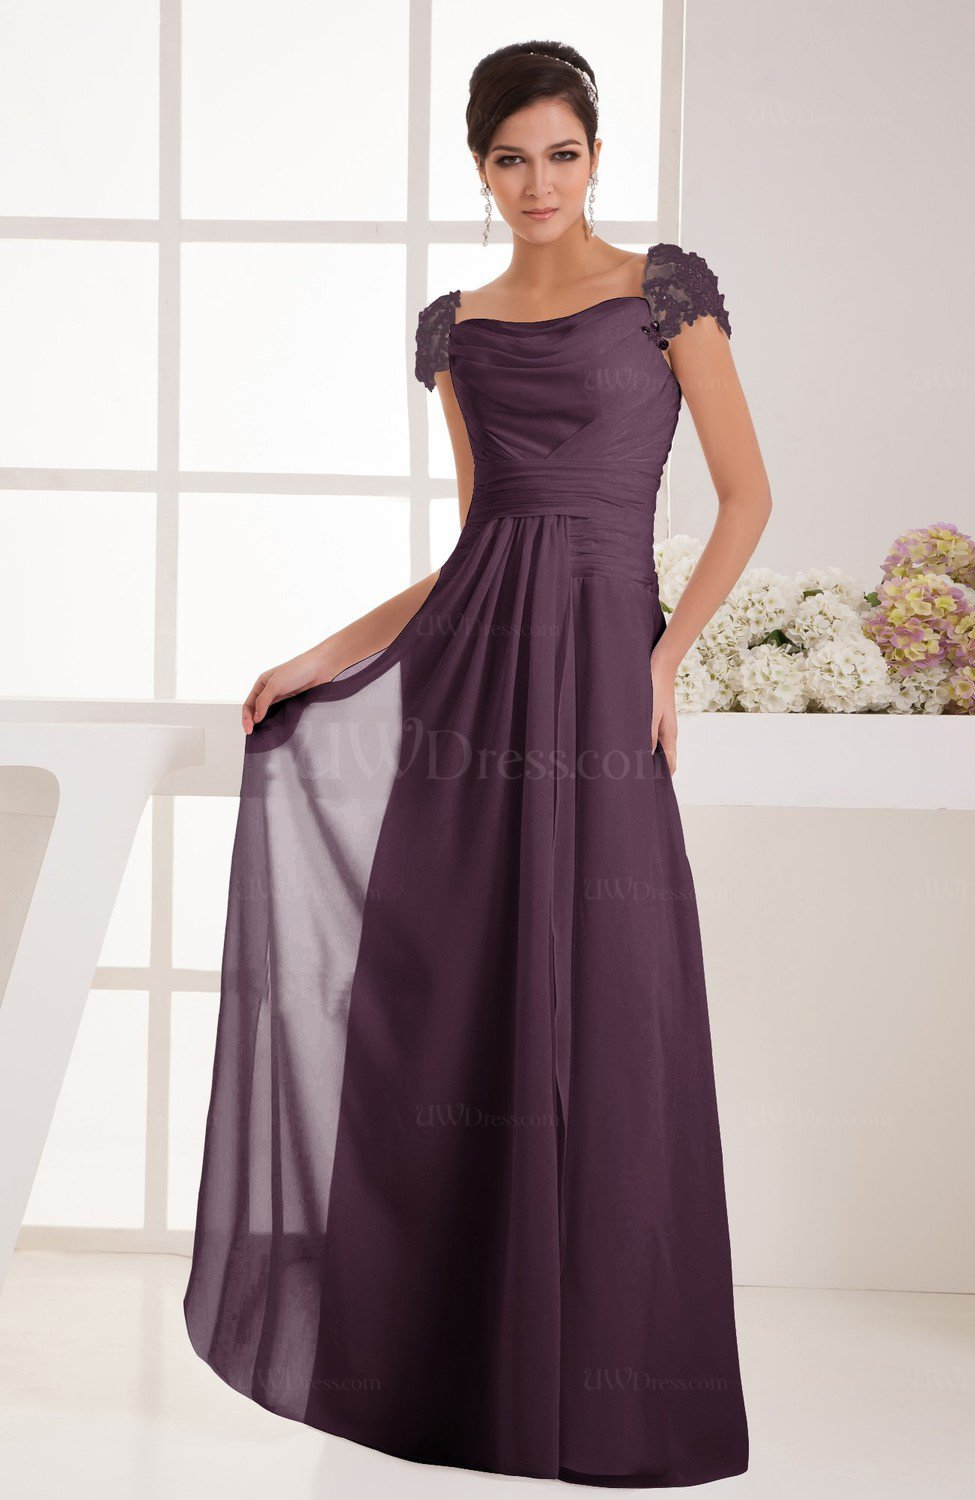 Plum with Sleeves Bridesmaid Dress Chiffon Trendy Floor Length ...